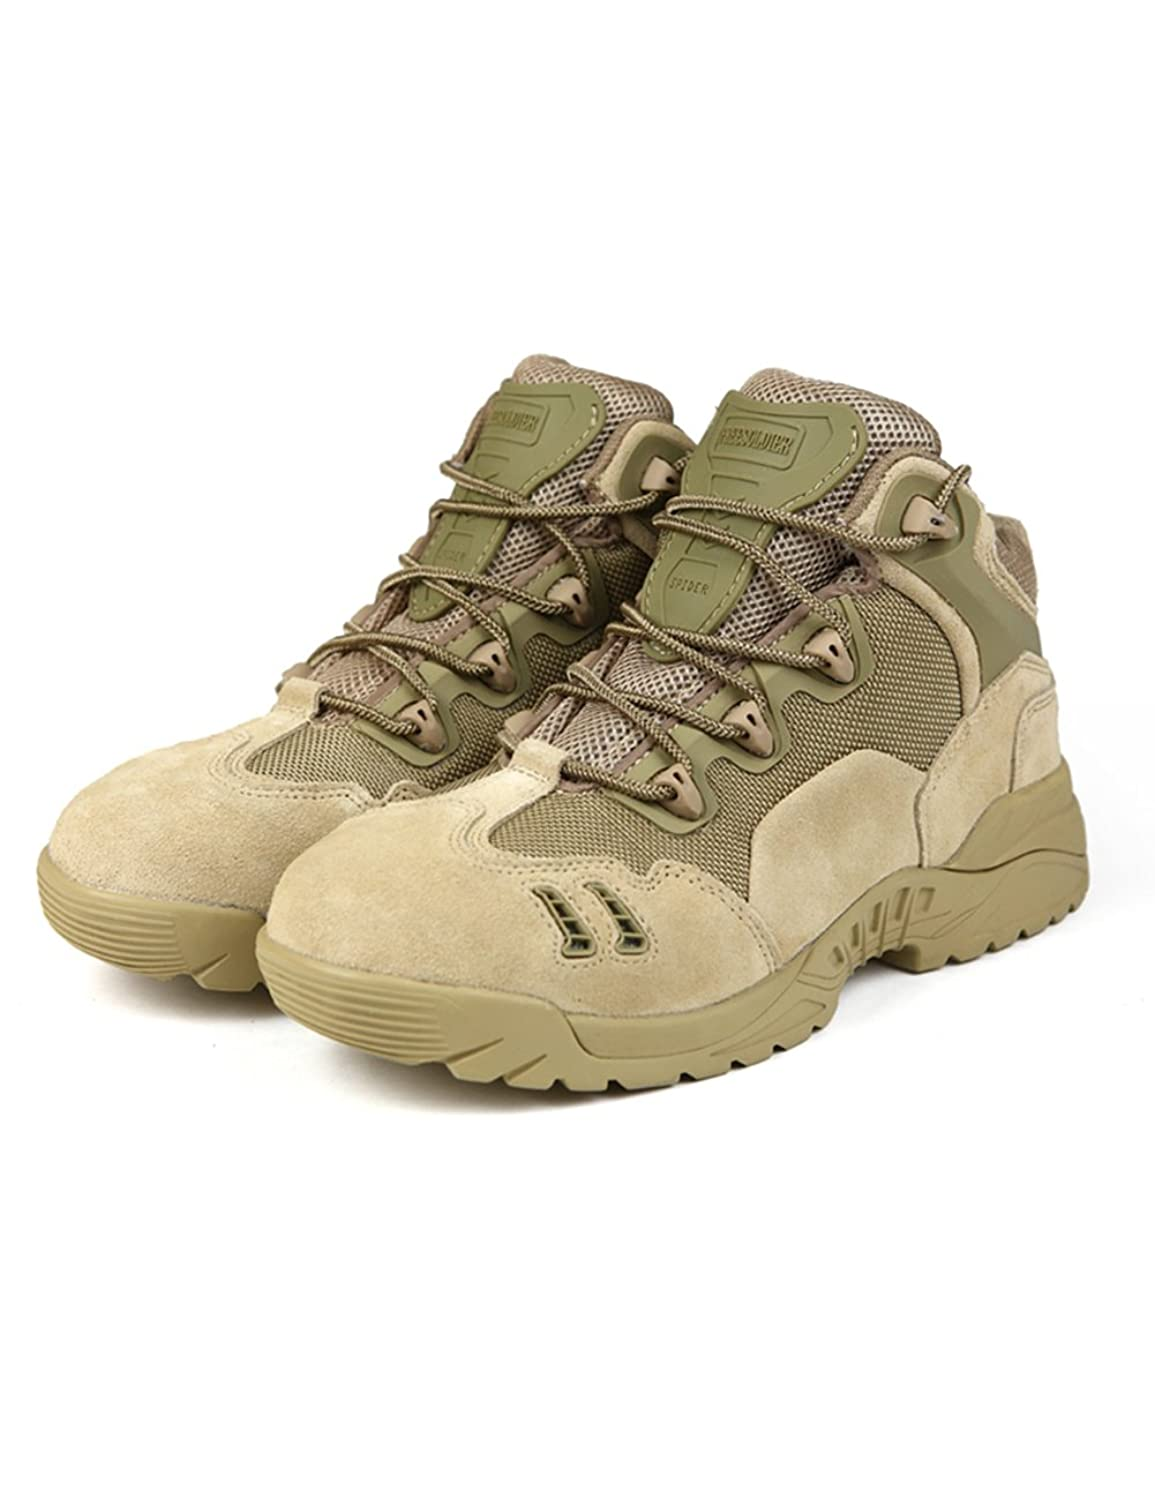 FREE SOLDIER Men Outdoor Sport Hiking Shoe Breathable Low-upper Tactical Boots